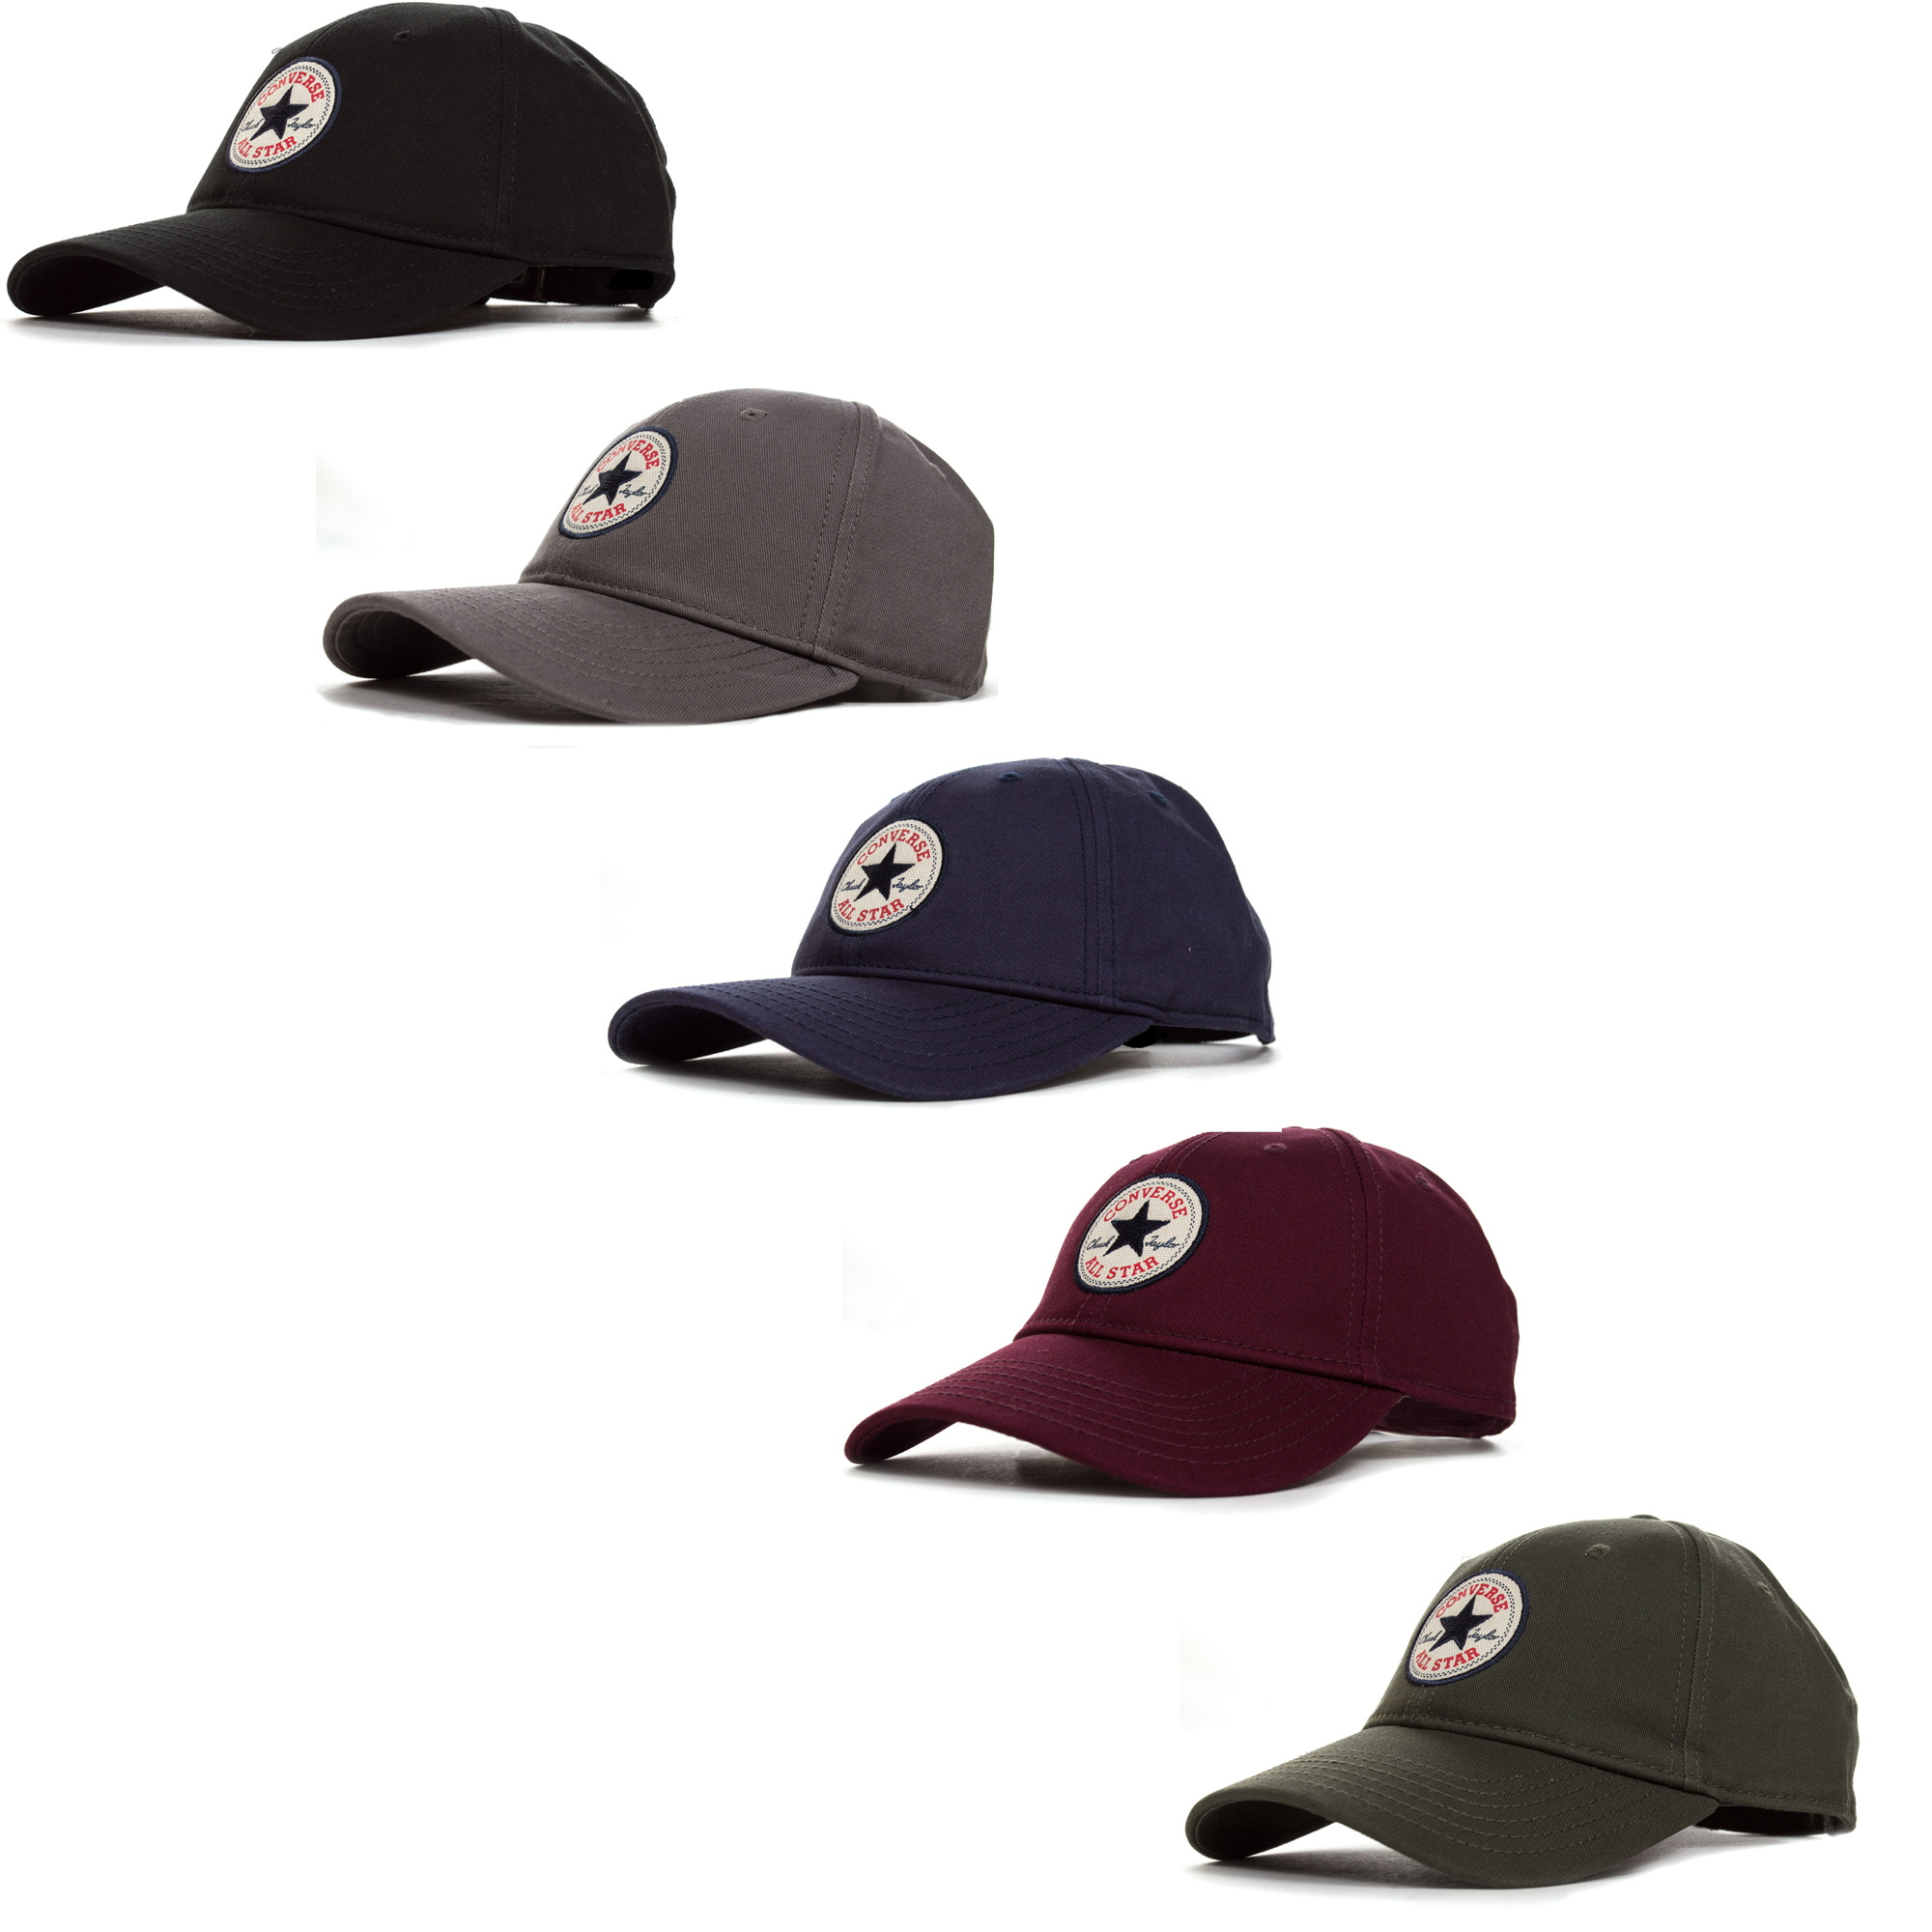 5dd91c1bd3c7ed Details about Converse All Star Core Classic Fashion Adult Adjustable  Baseball Cap Hat